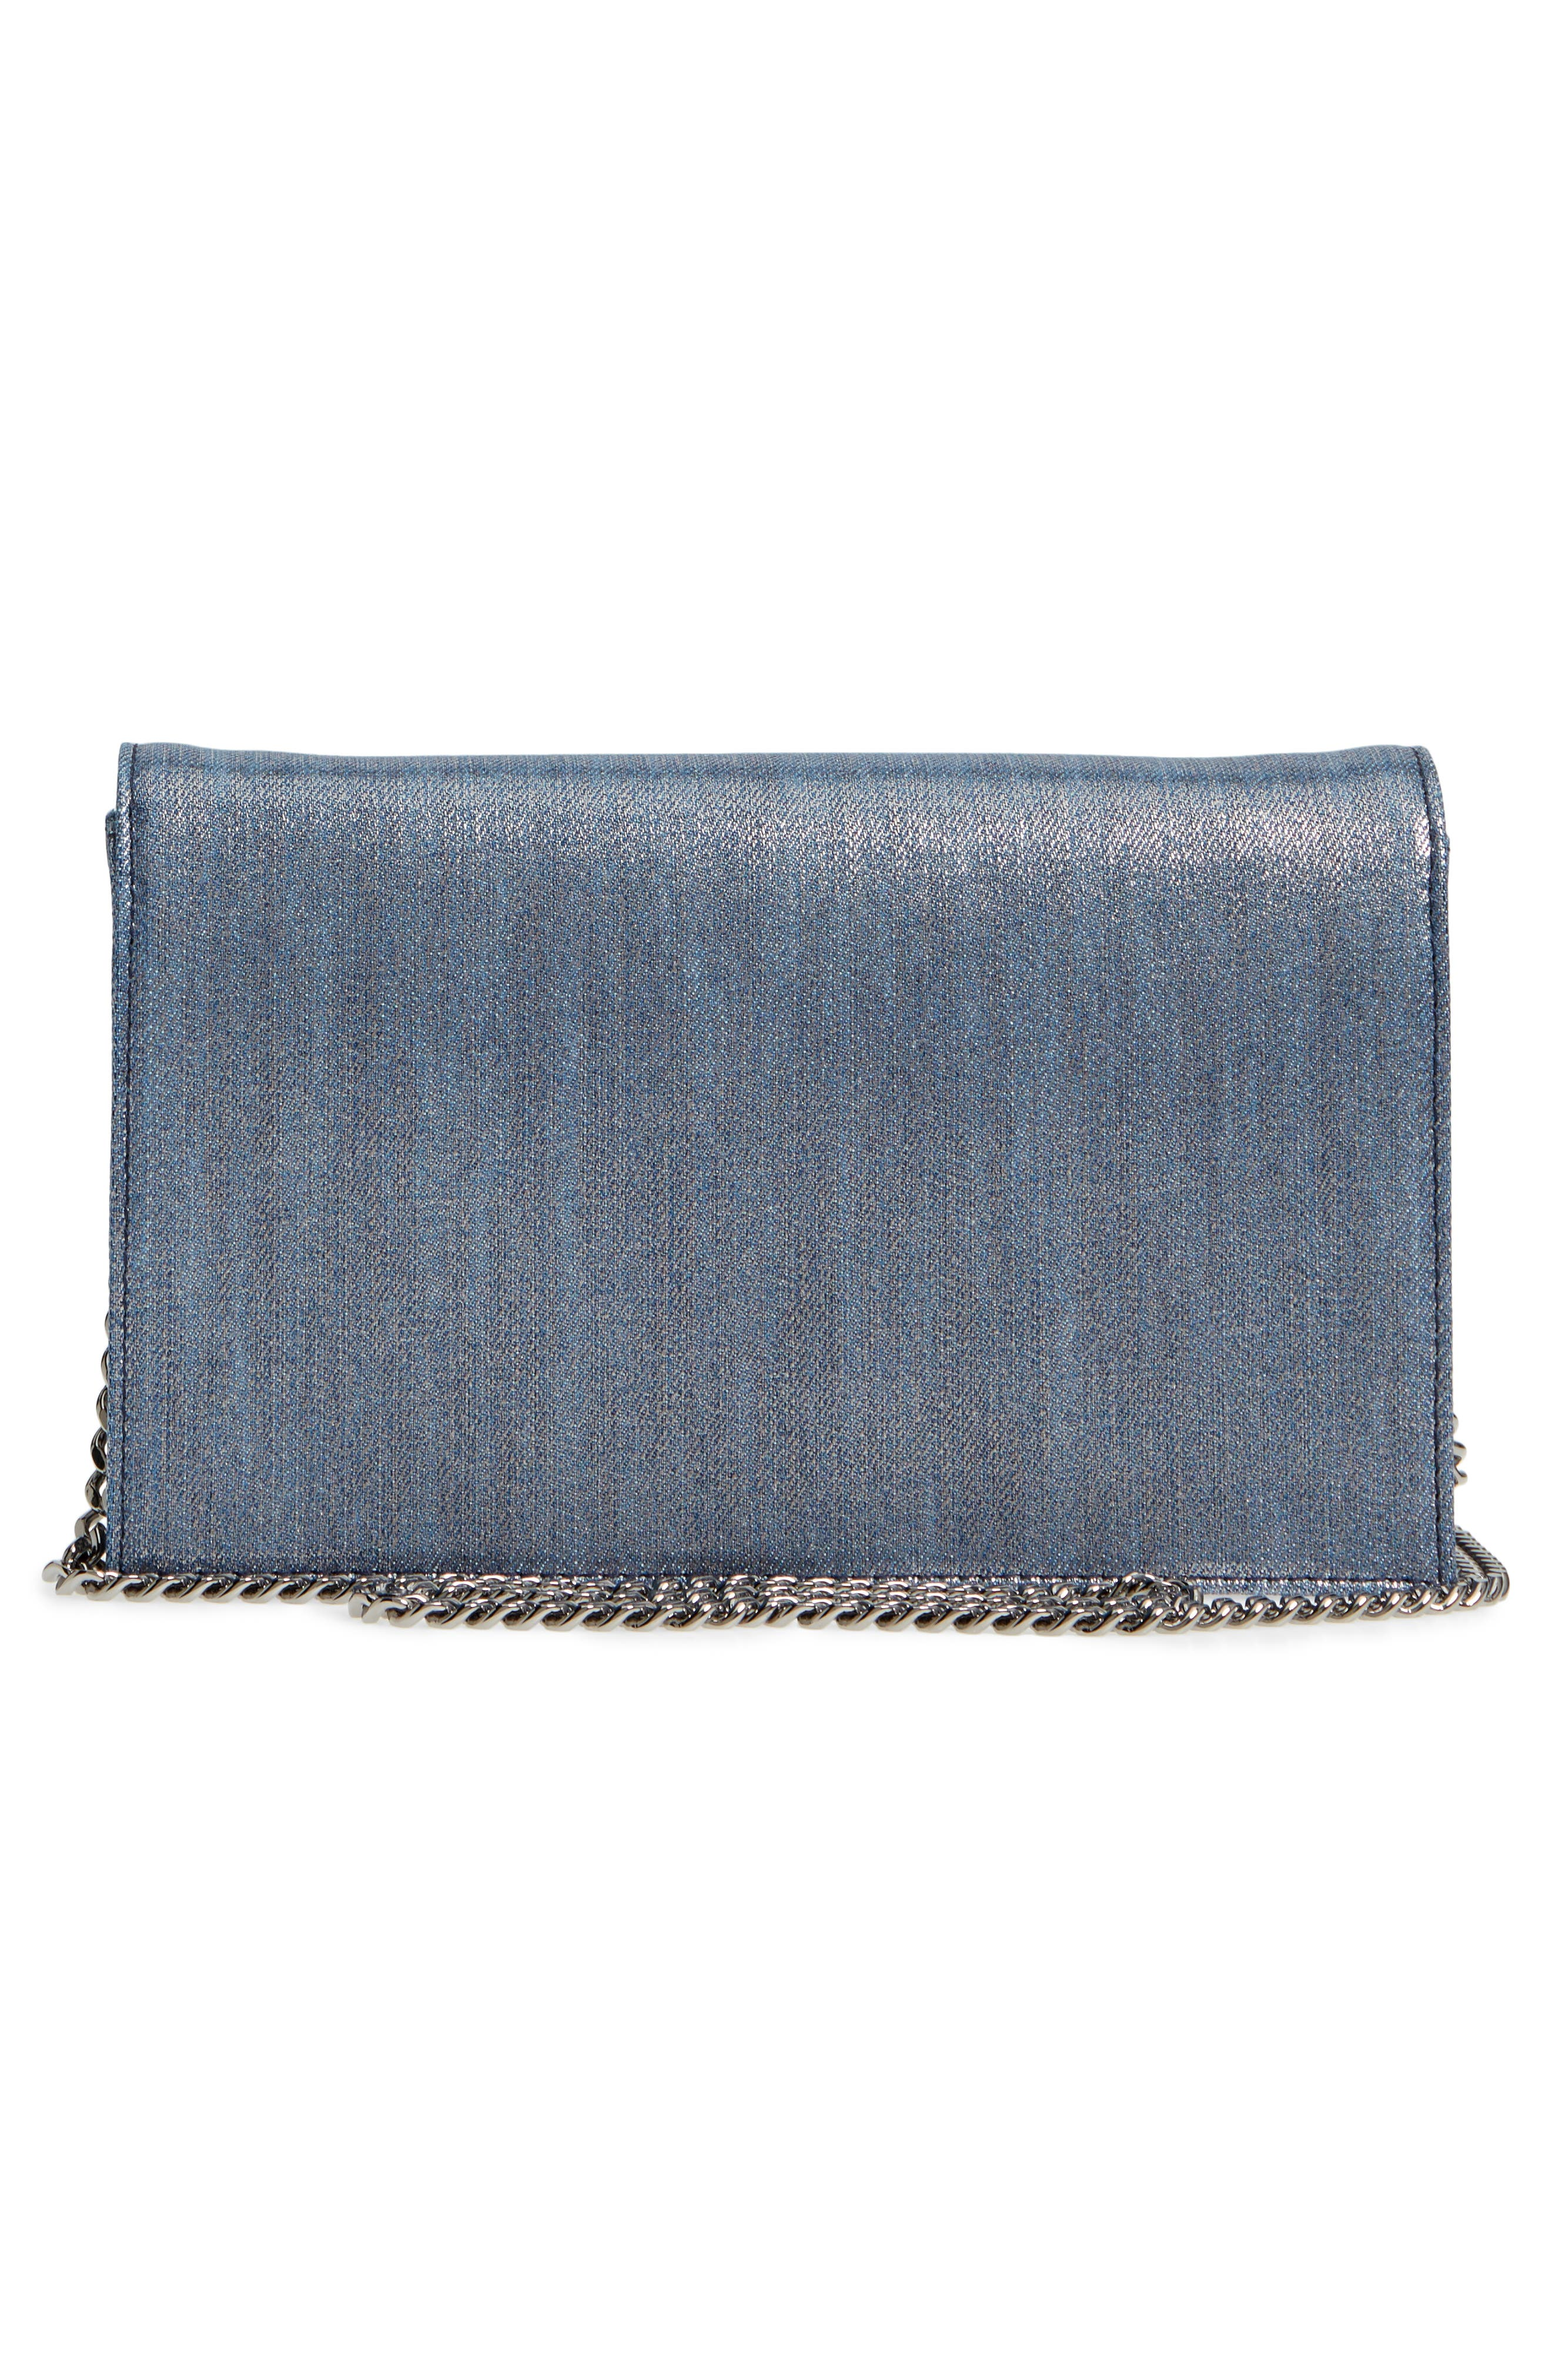 Florence Metallic Denim Glitter Clutch,                             Alternate thumbnail 3, color,                             Dusk Blue